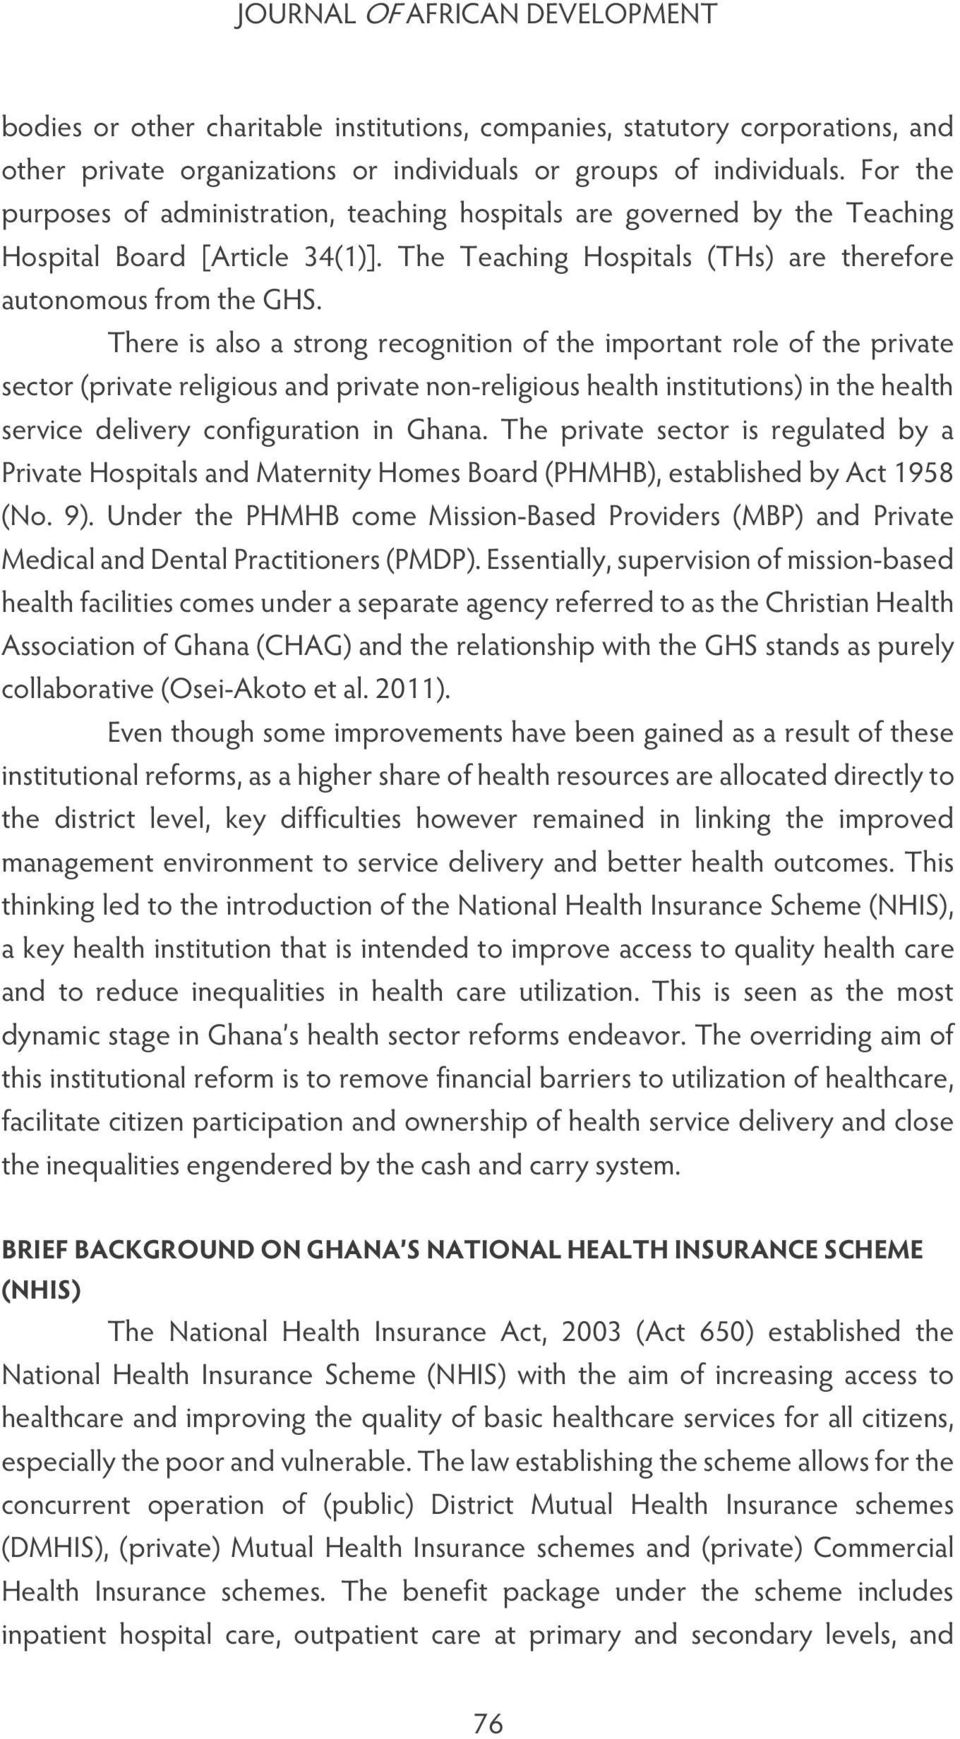 There is also a strong recognition of the important role of the private sector (private religious and private non-religious health institutions) in the health service delivery configuration in Ghana.